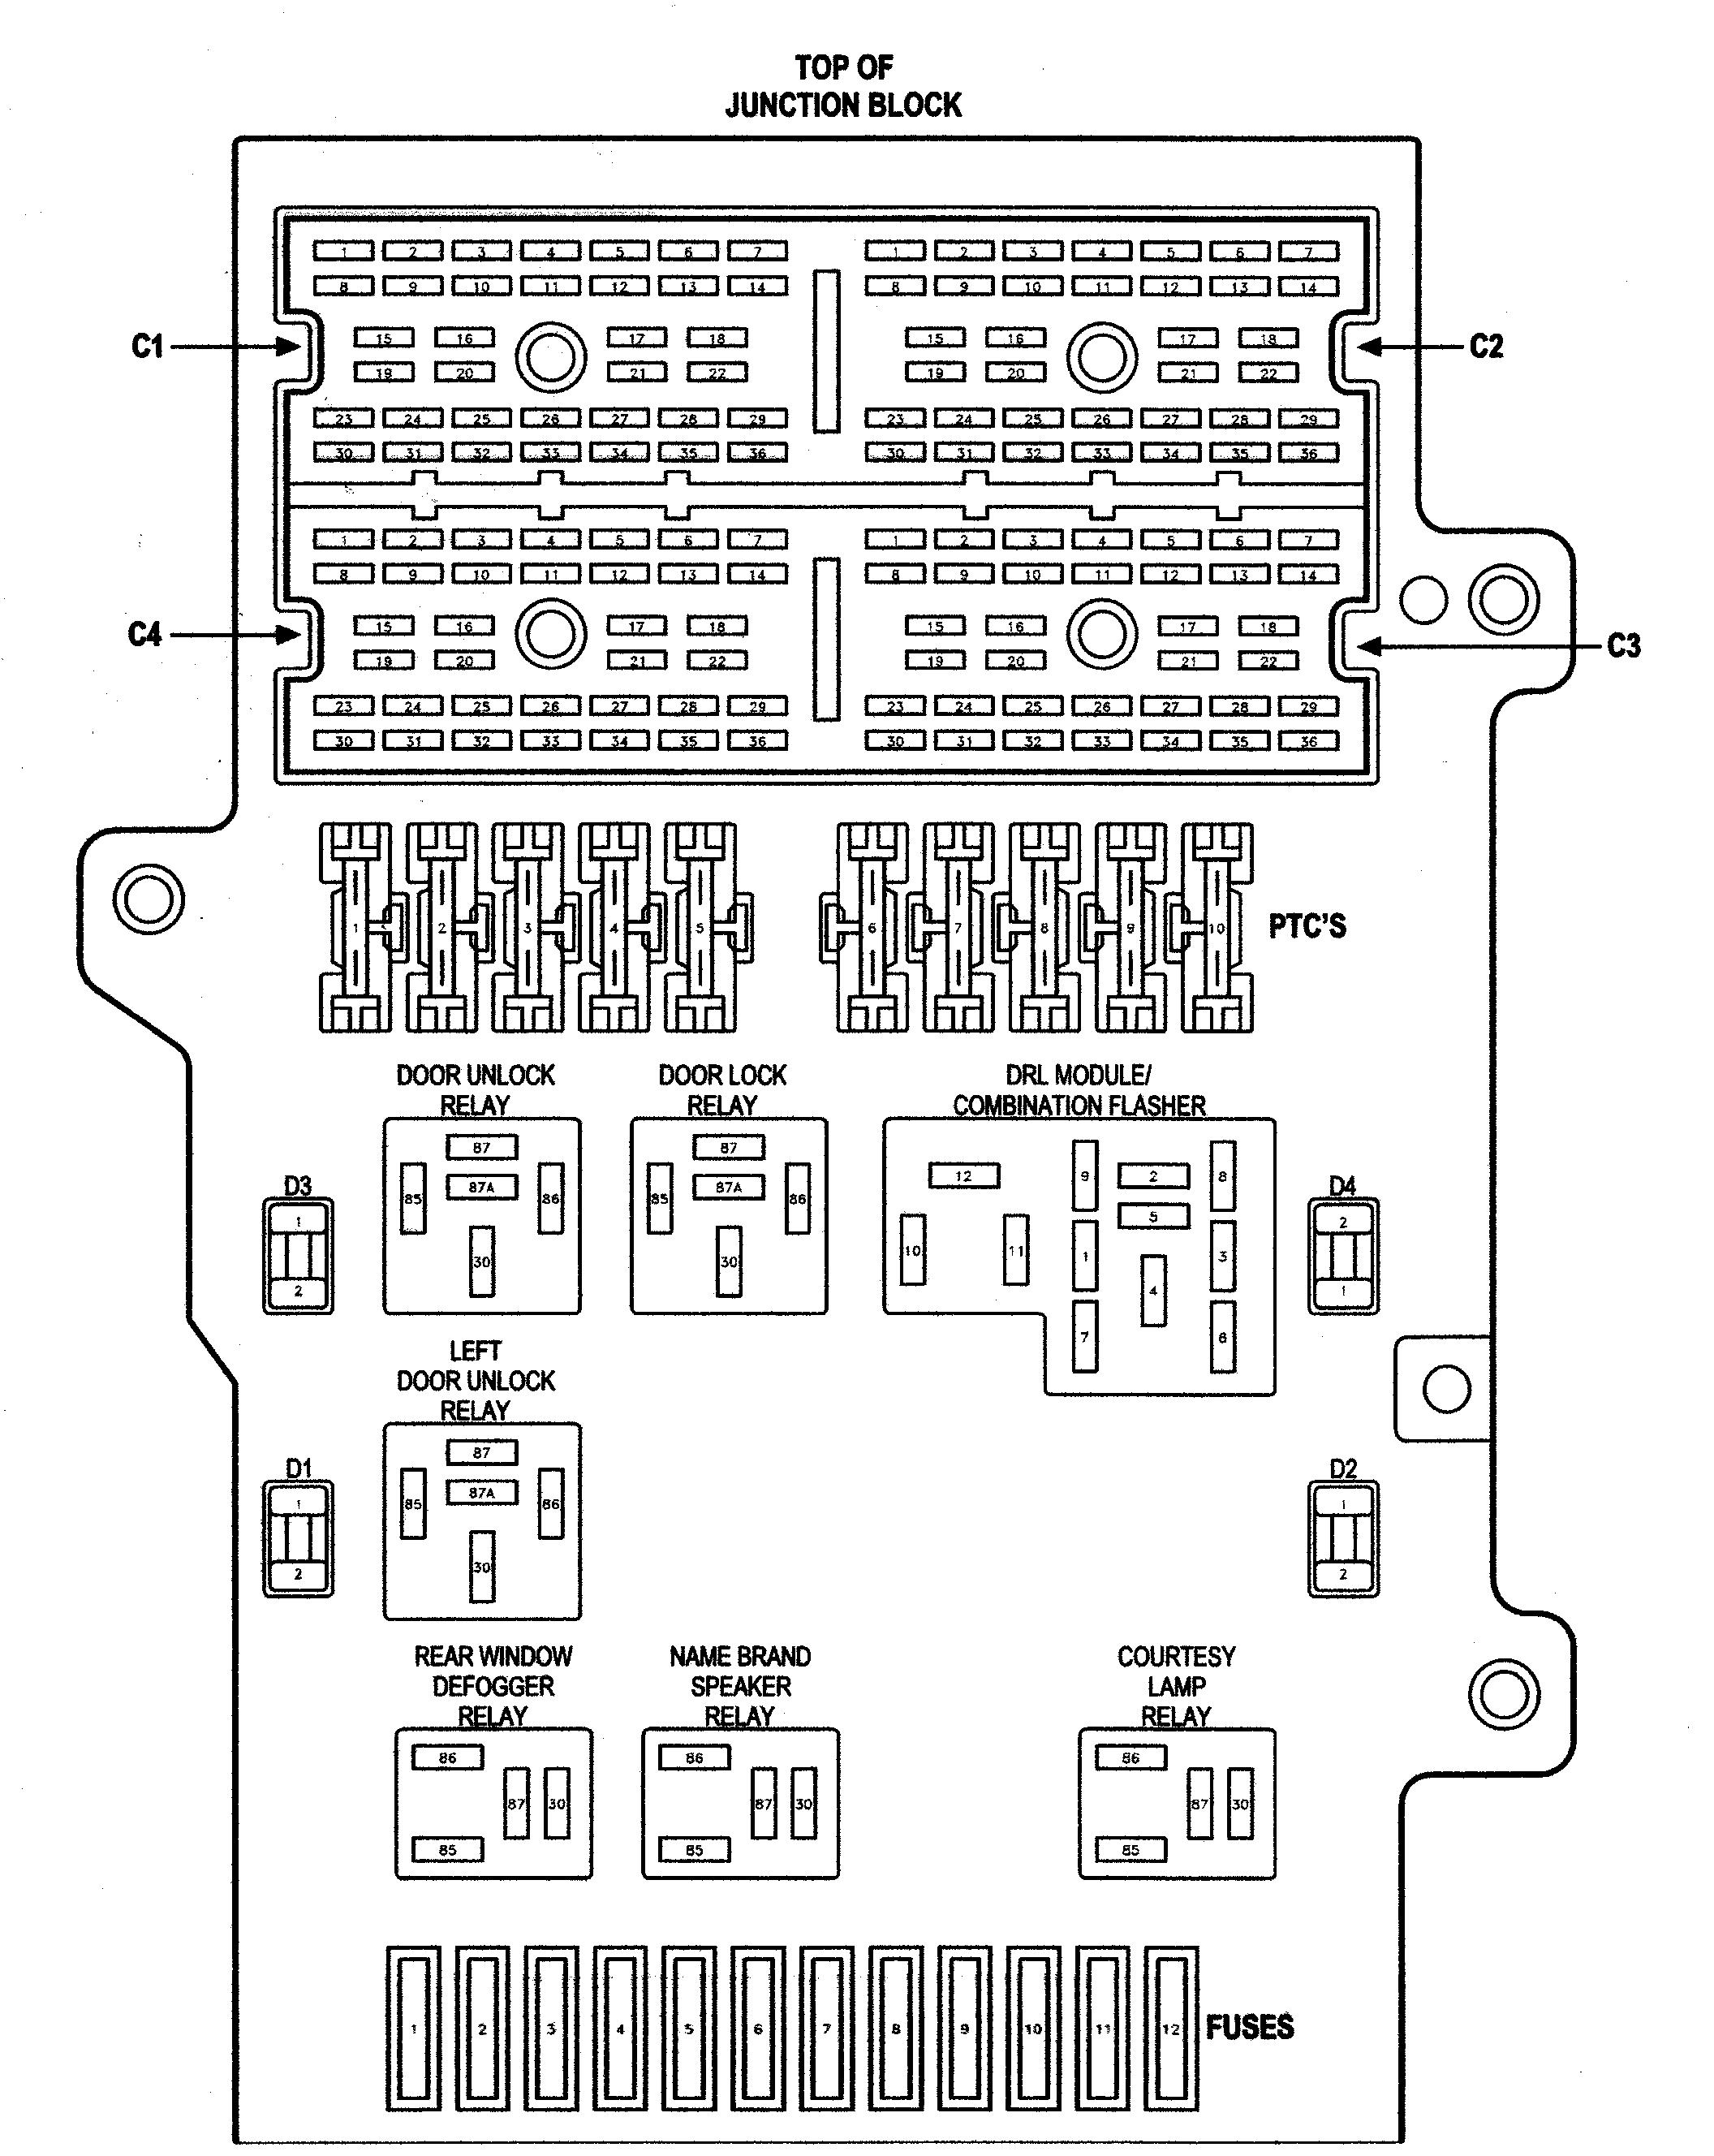 2007 chrysler town and country fuse box diagram wiring diagram2006 chrysler town country fuse box diagram [ 2112 x 2656 Pixel ]